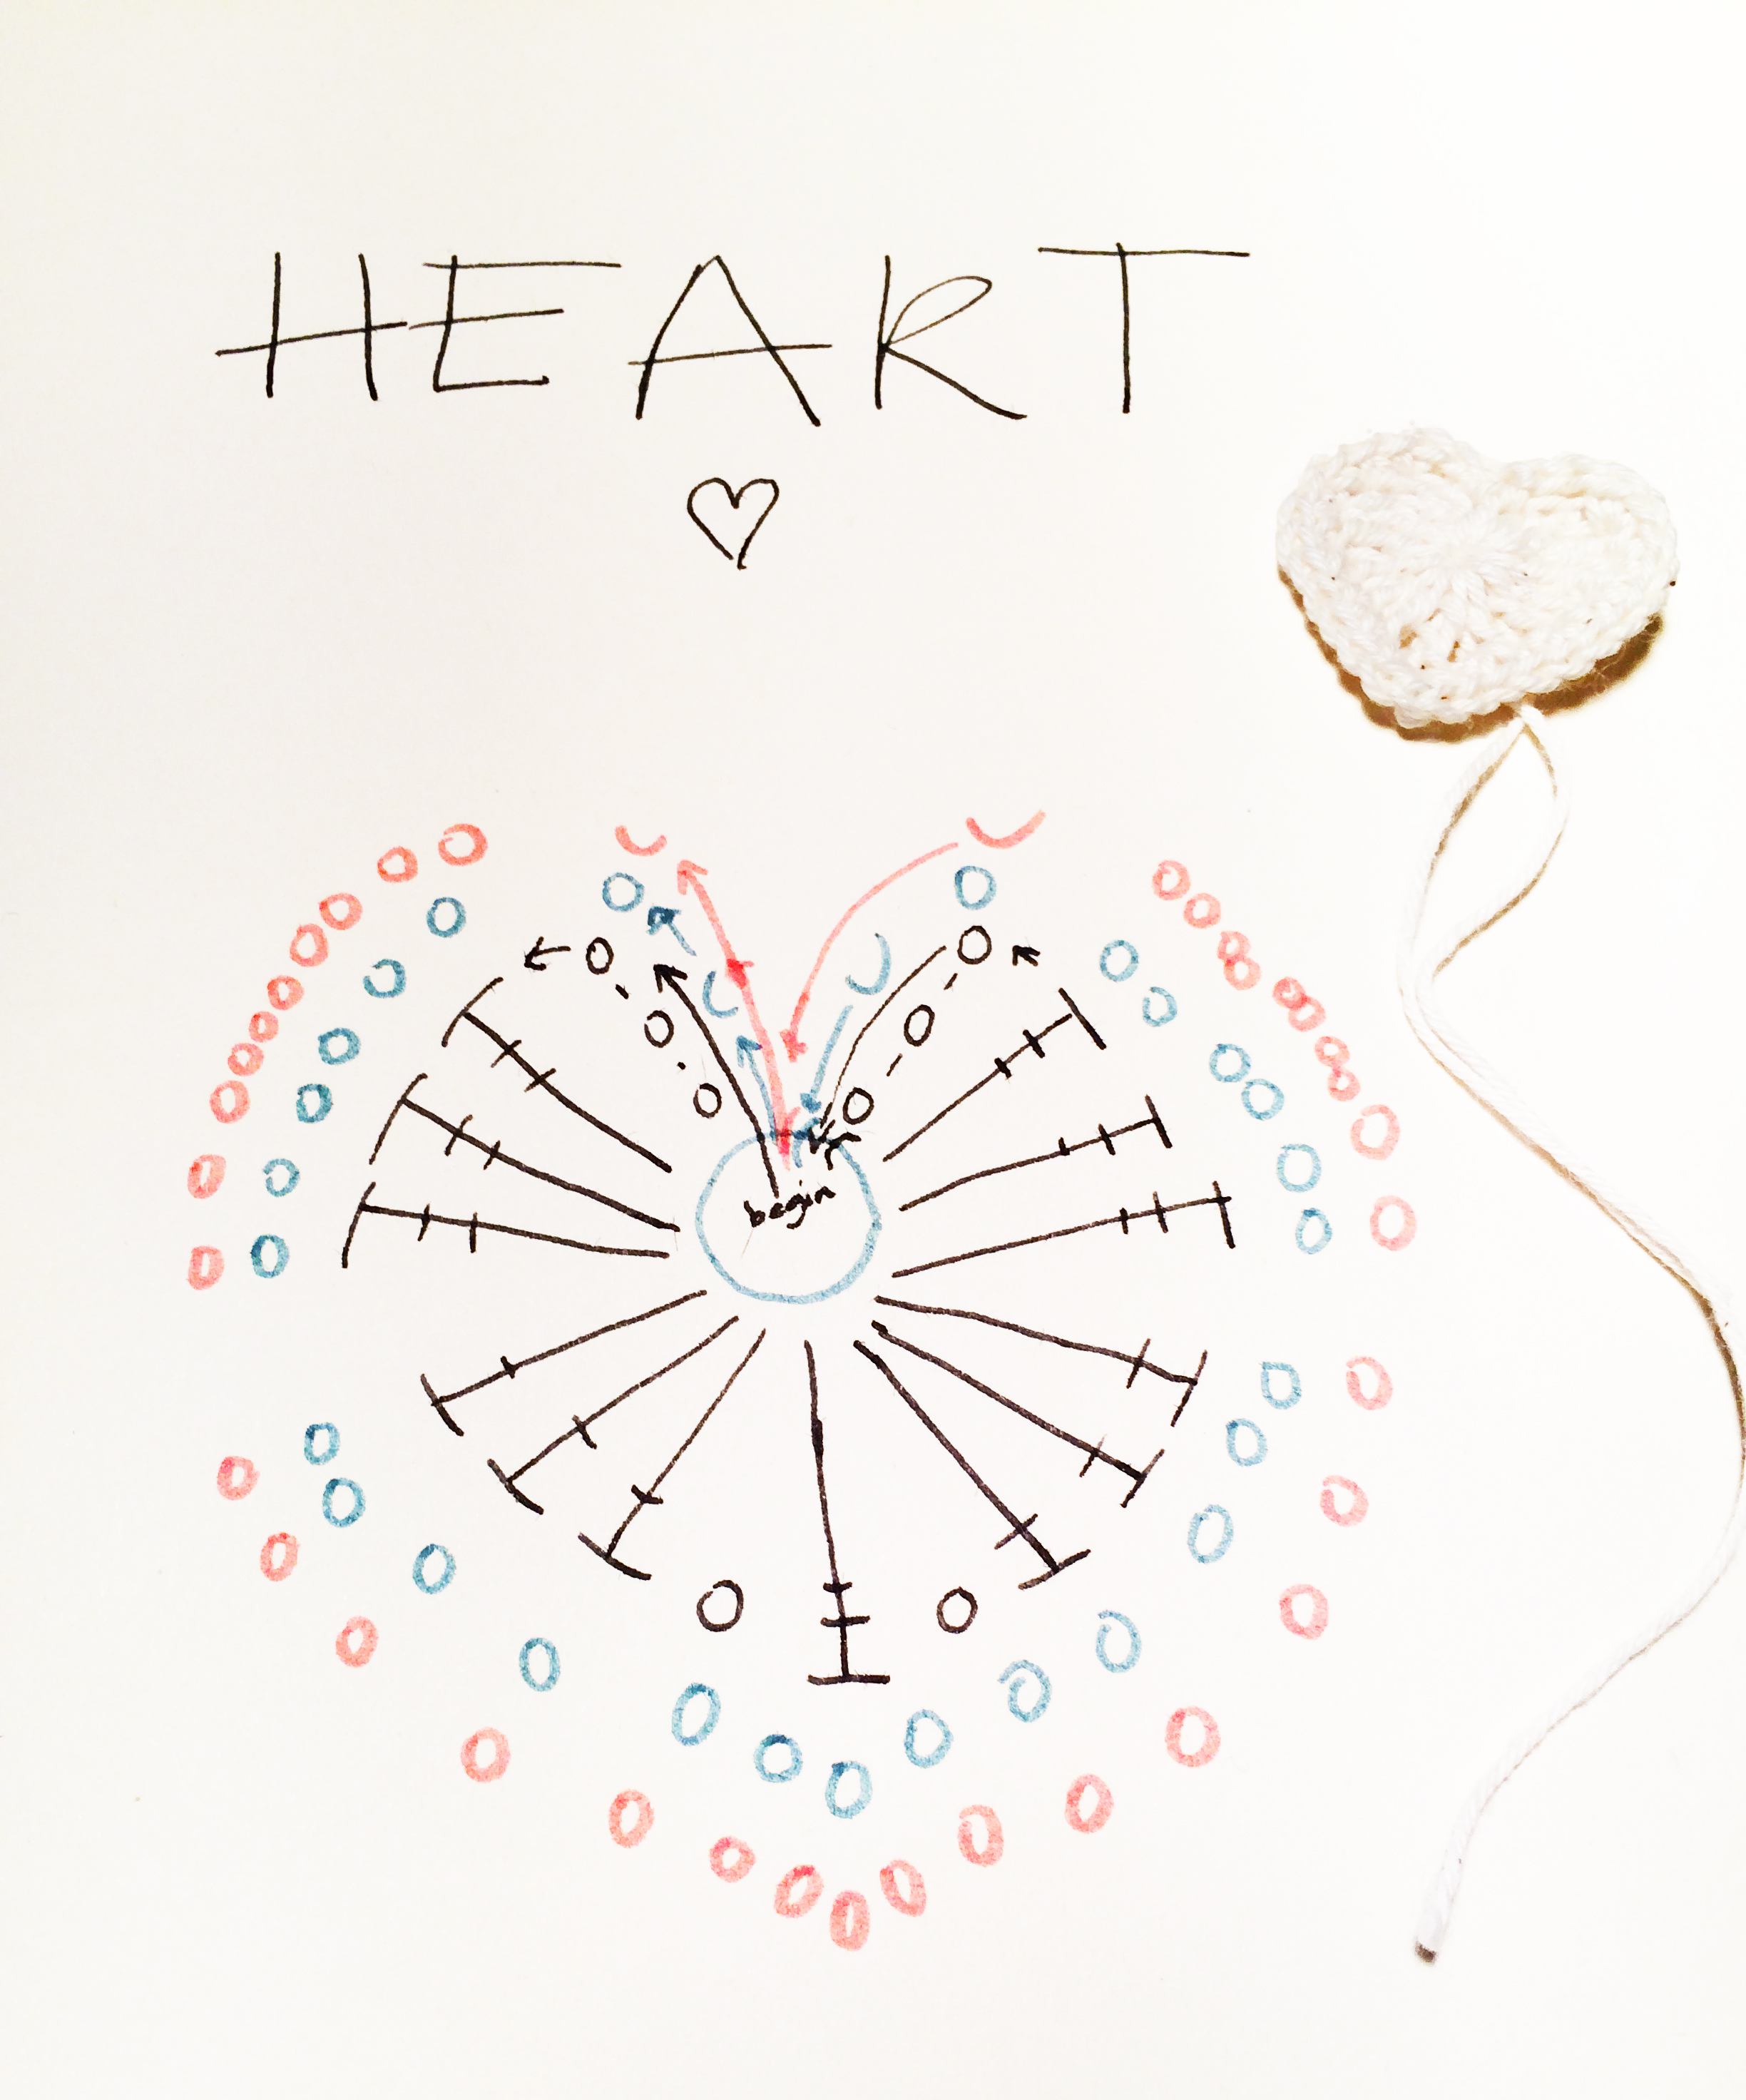 tutorial crochet heart- patroon gehaakt hart  http://www.warrelwater.nl